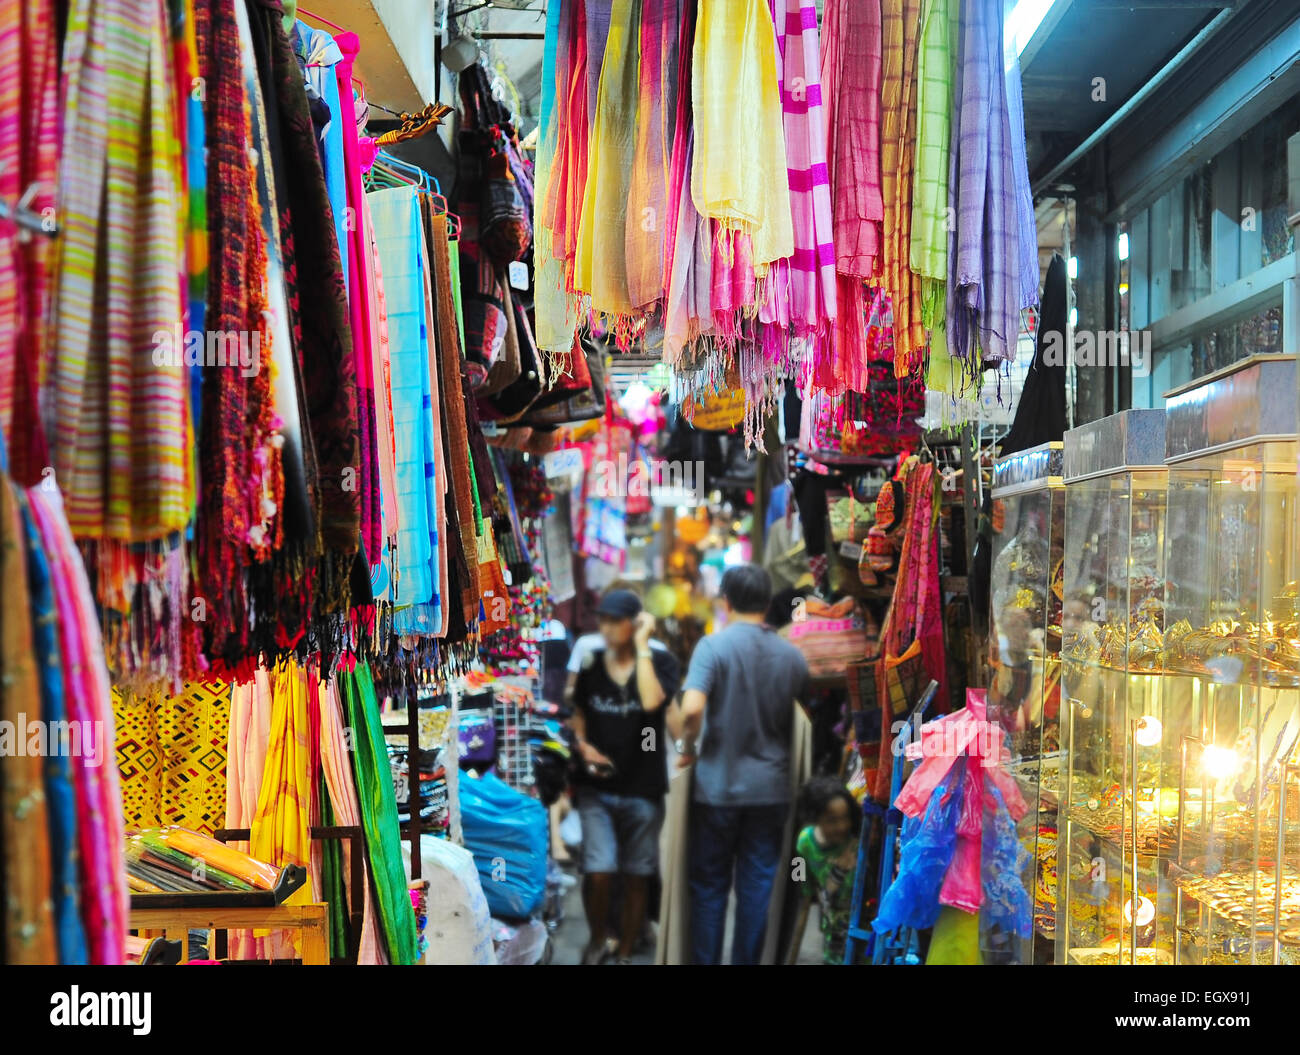 Chatuchak weekend market in Bangkok, Thailand. It is the largest market in Thailand. - Stock Image